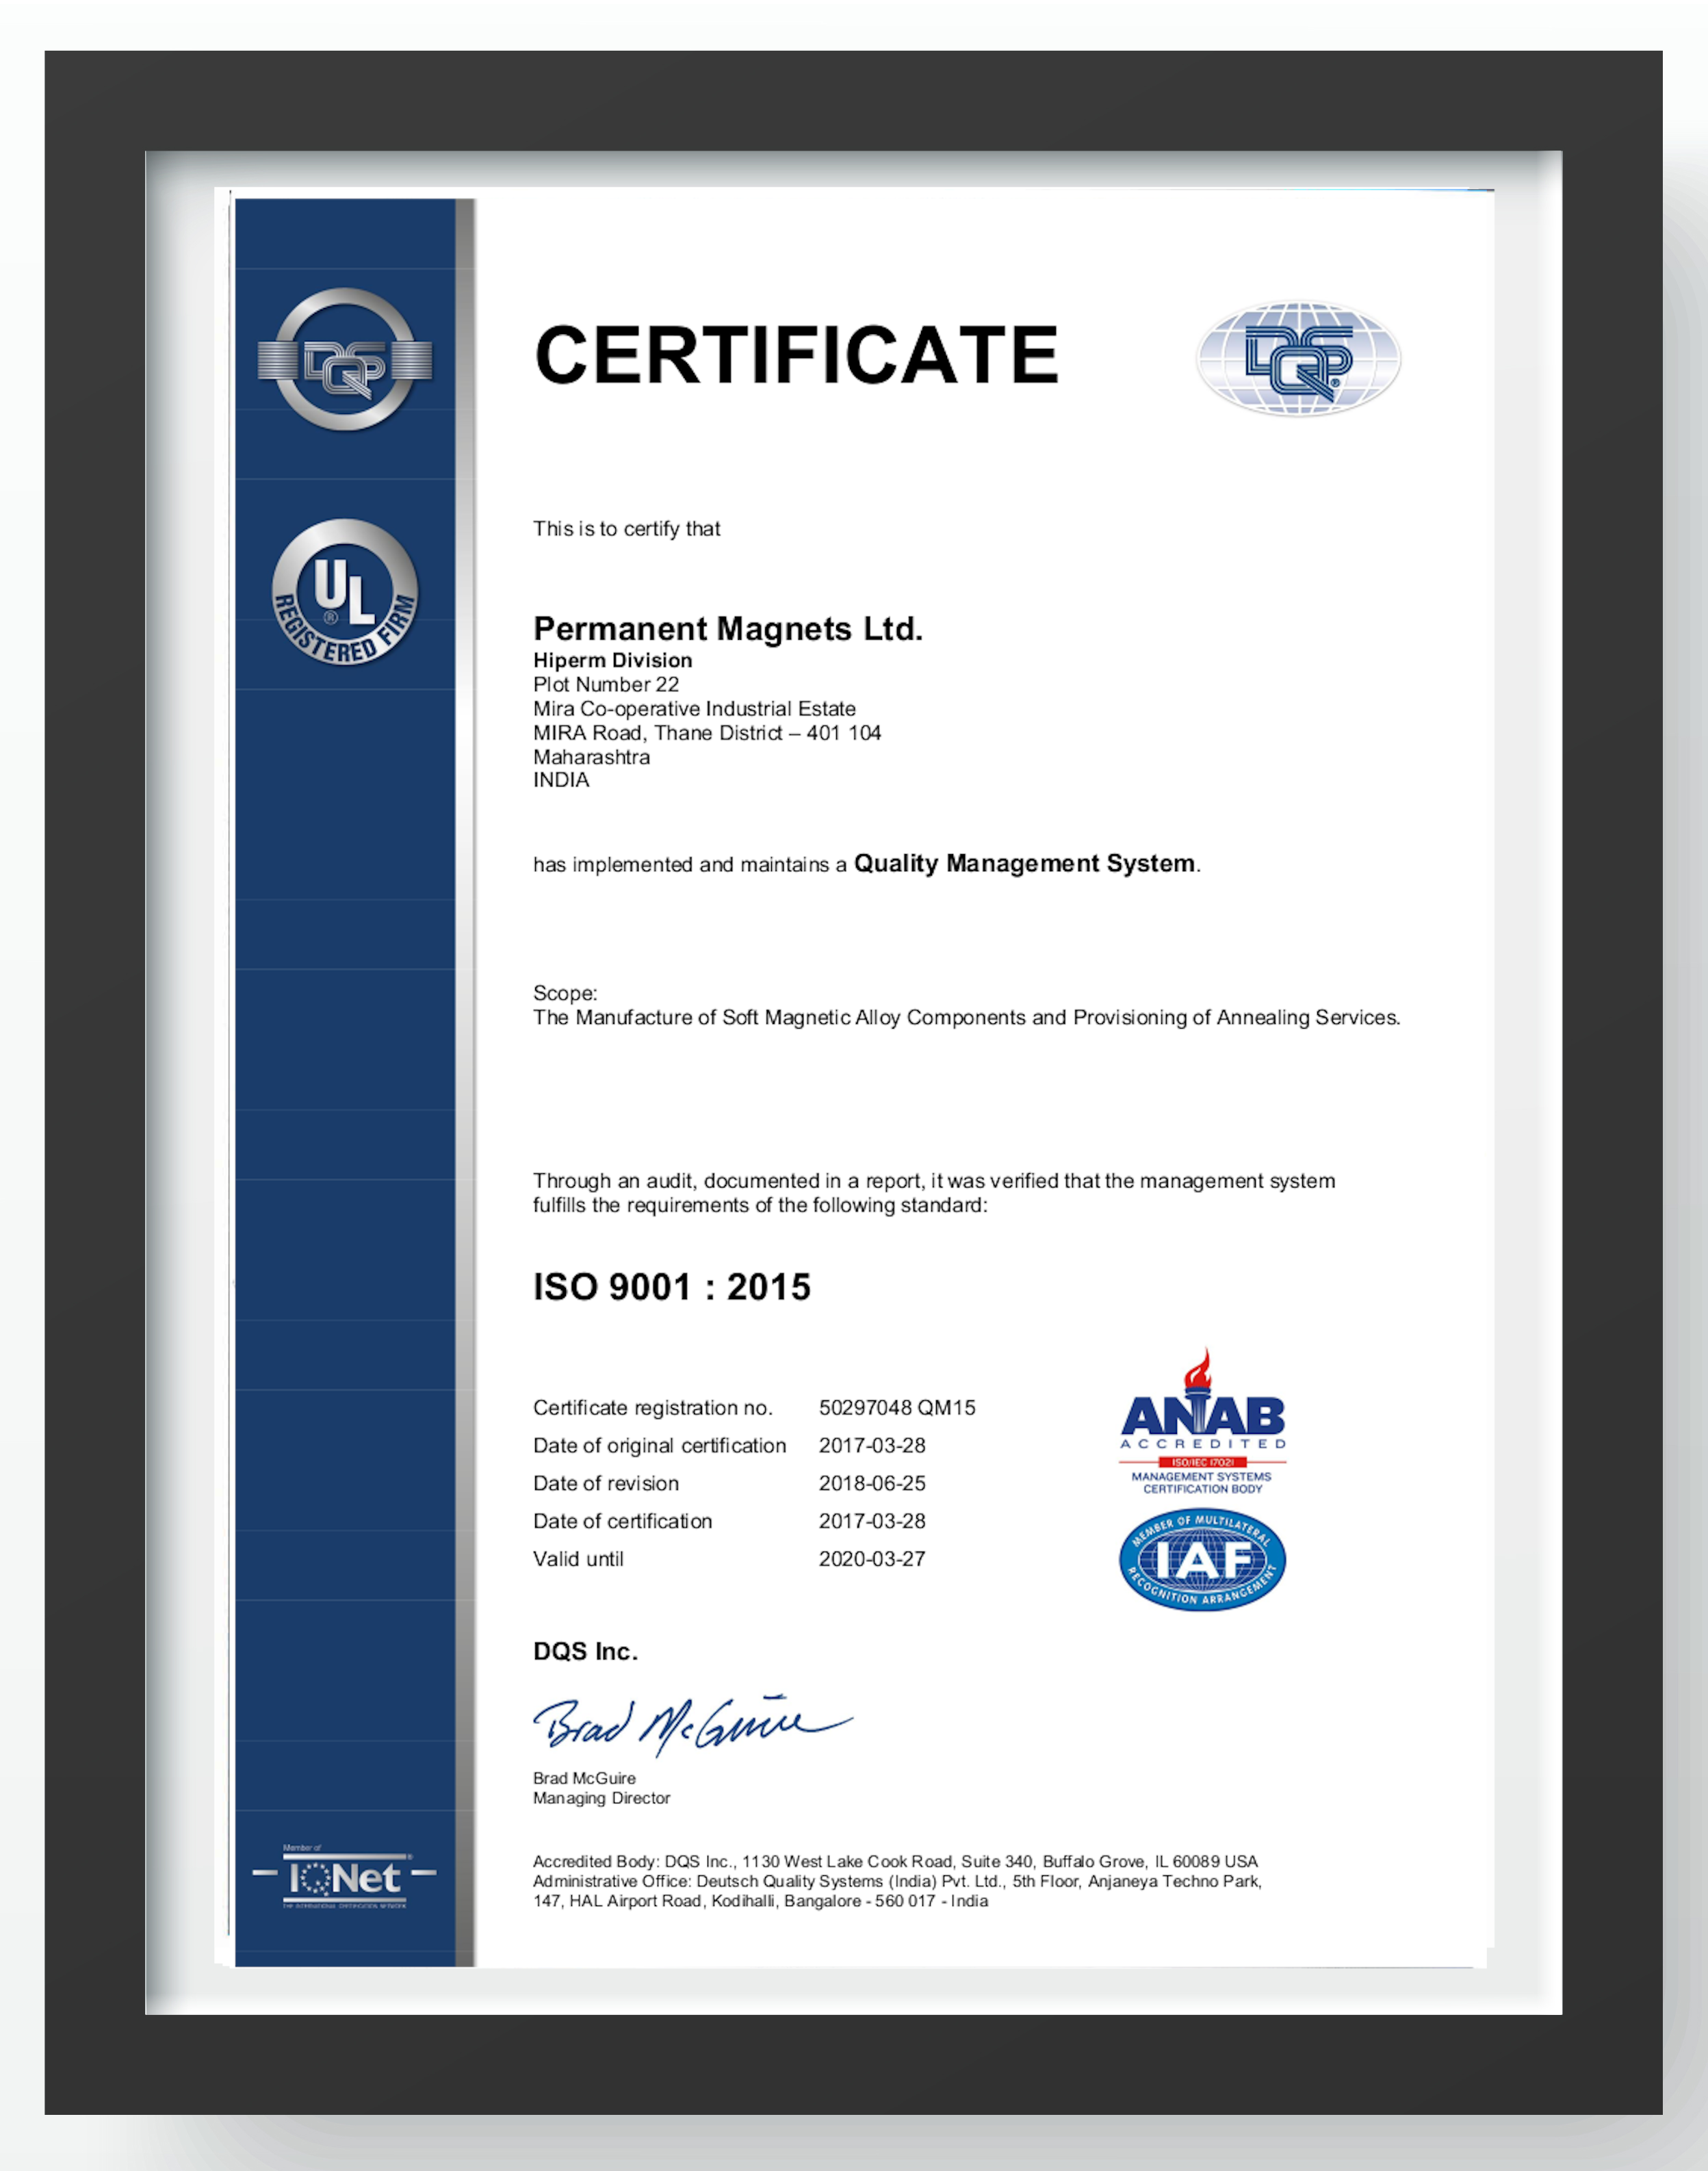 HIPERM QMS ISO 9001:2015 Policy